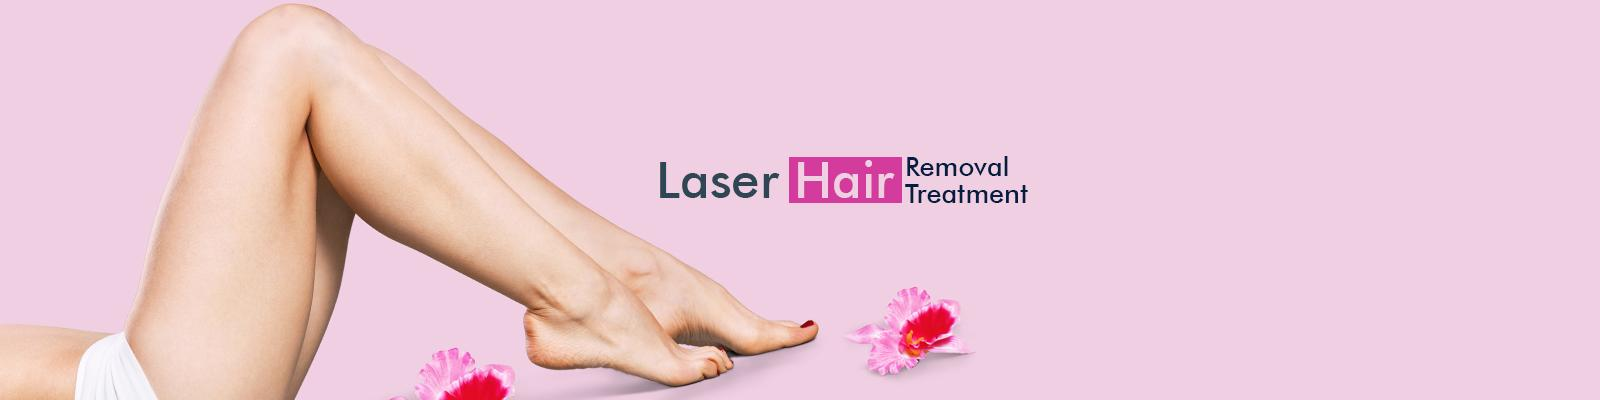 Permanent Laser Hair Removal Treatment - Hair Reduction